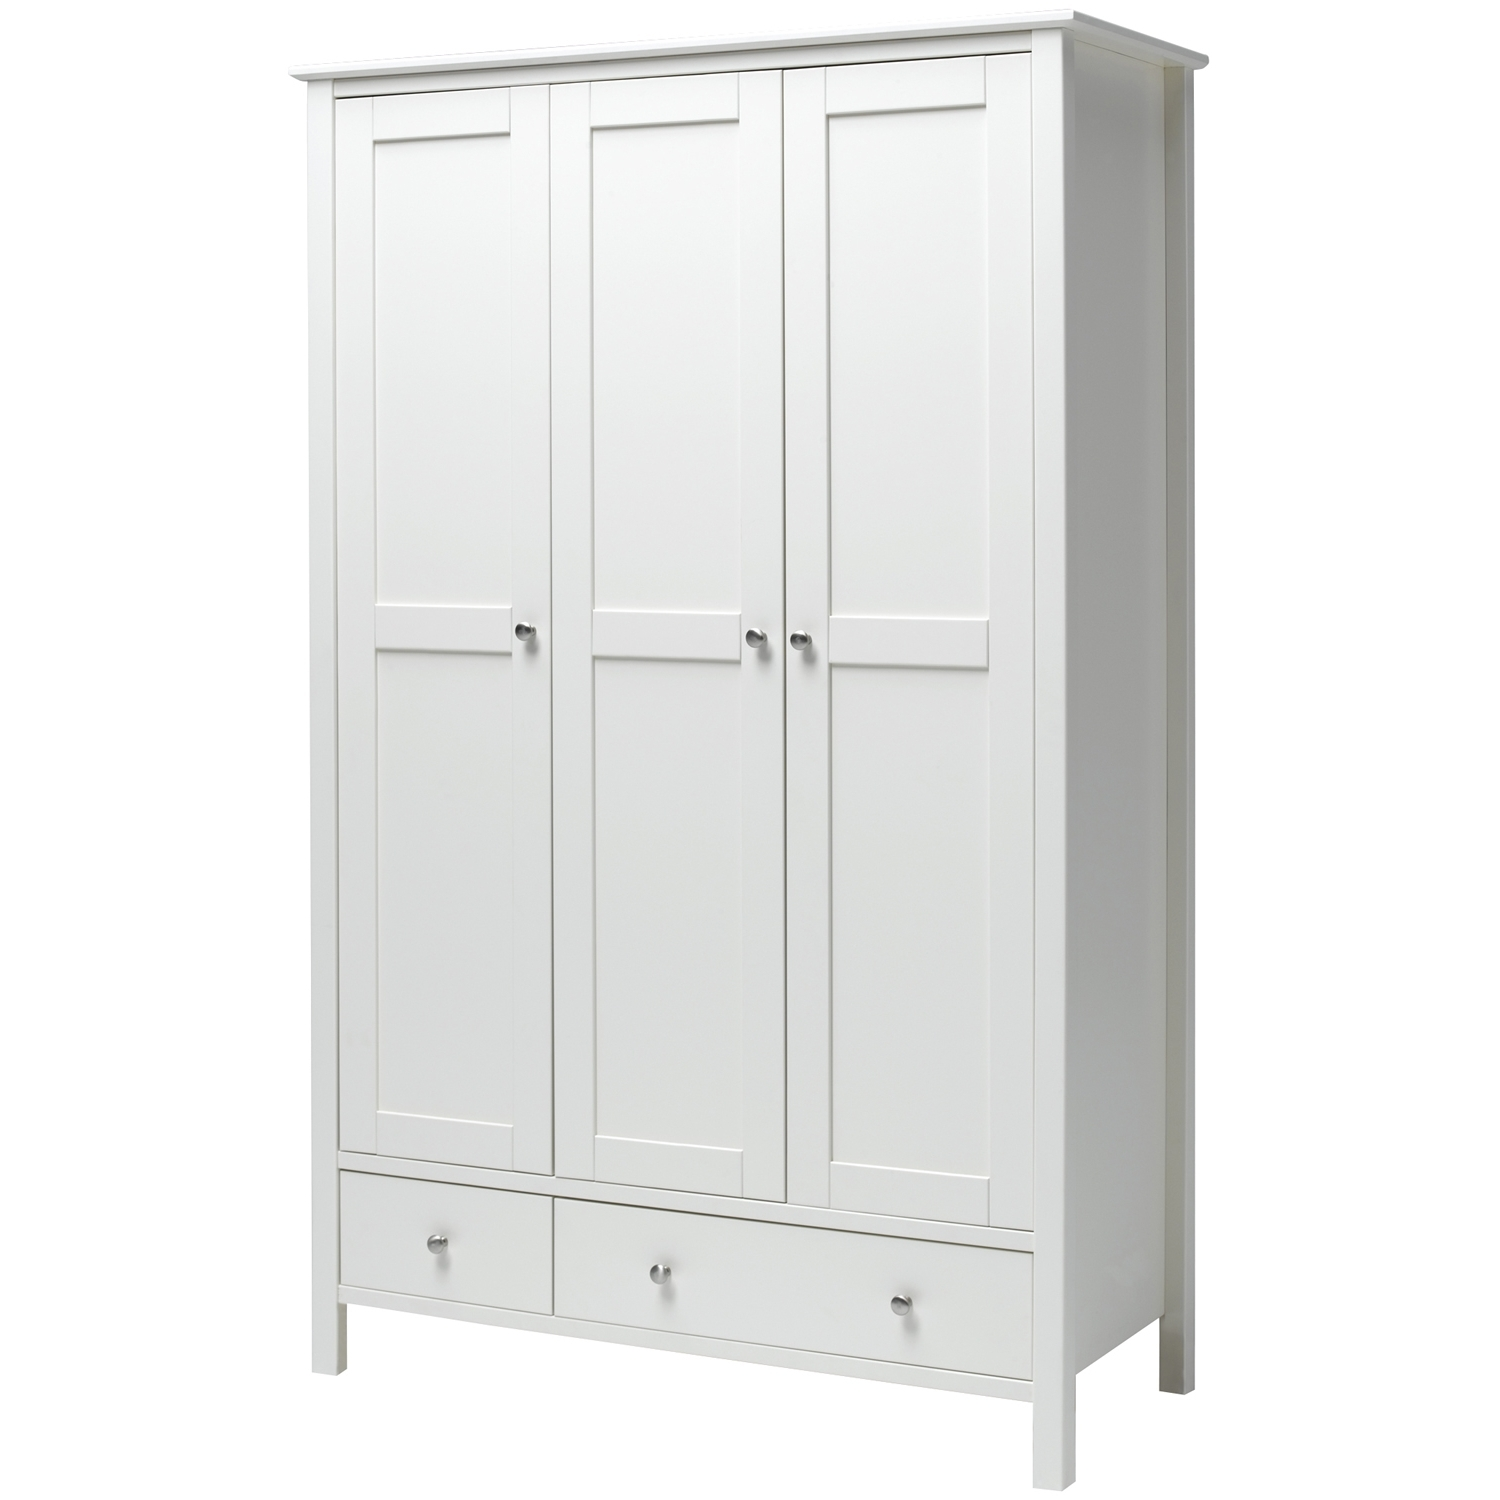 Stockholm 3 Door 2 Drawer Wardrobe White – Simply Furniture Regarding Current White 3 Door Wardrobes With Drawers (View 2 of 15)